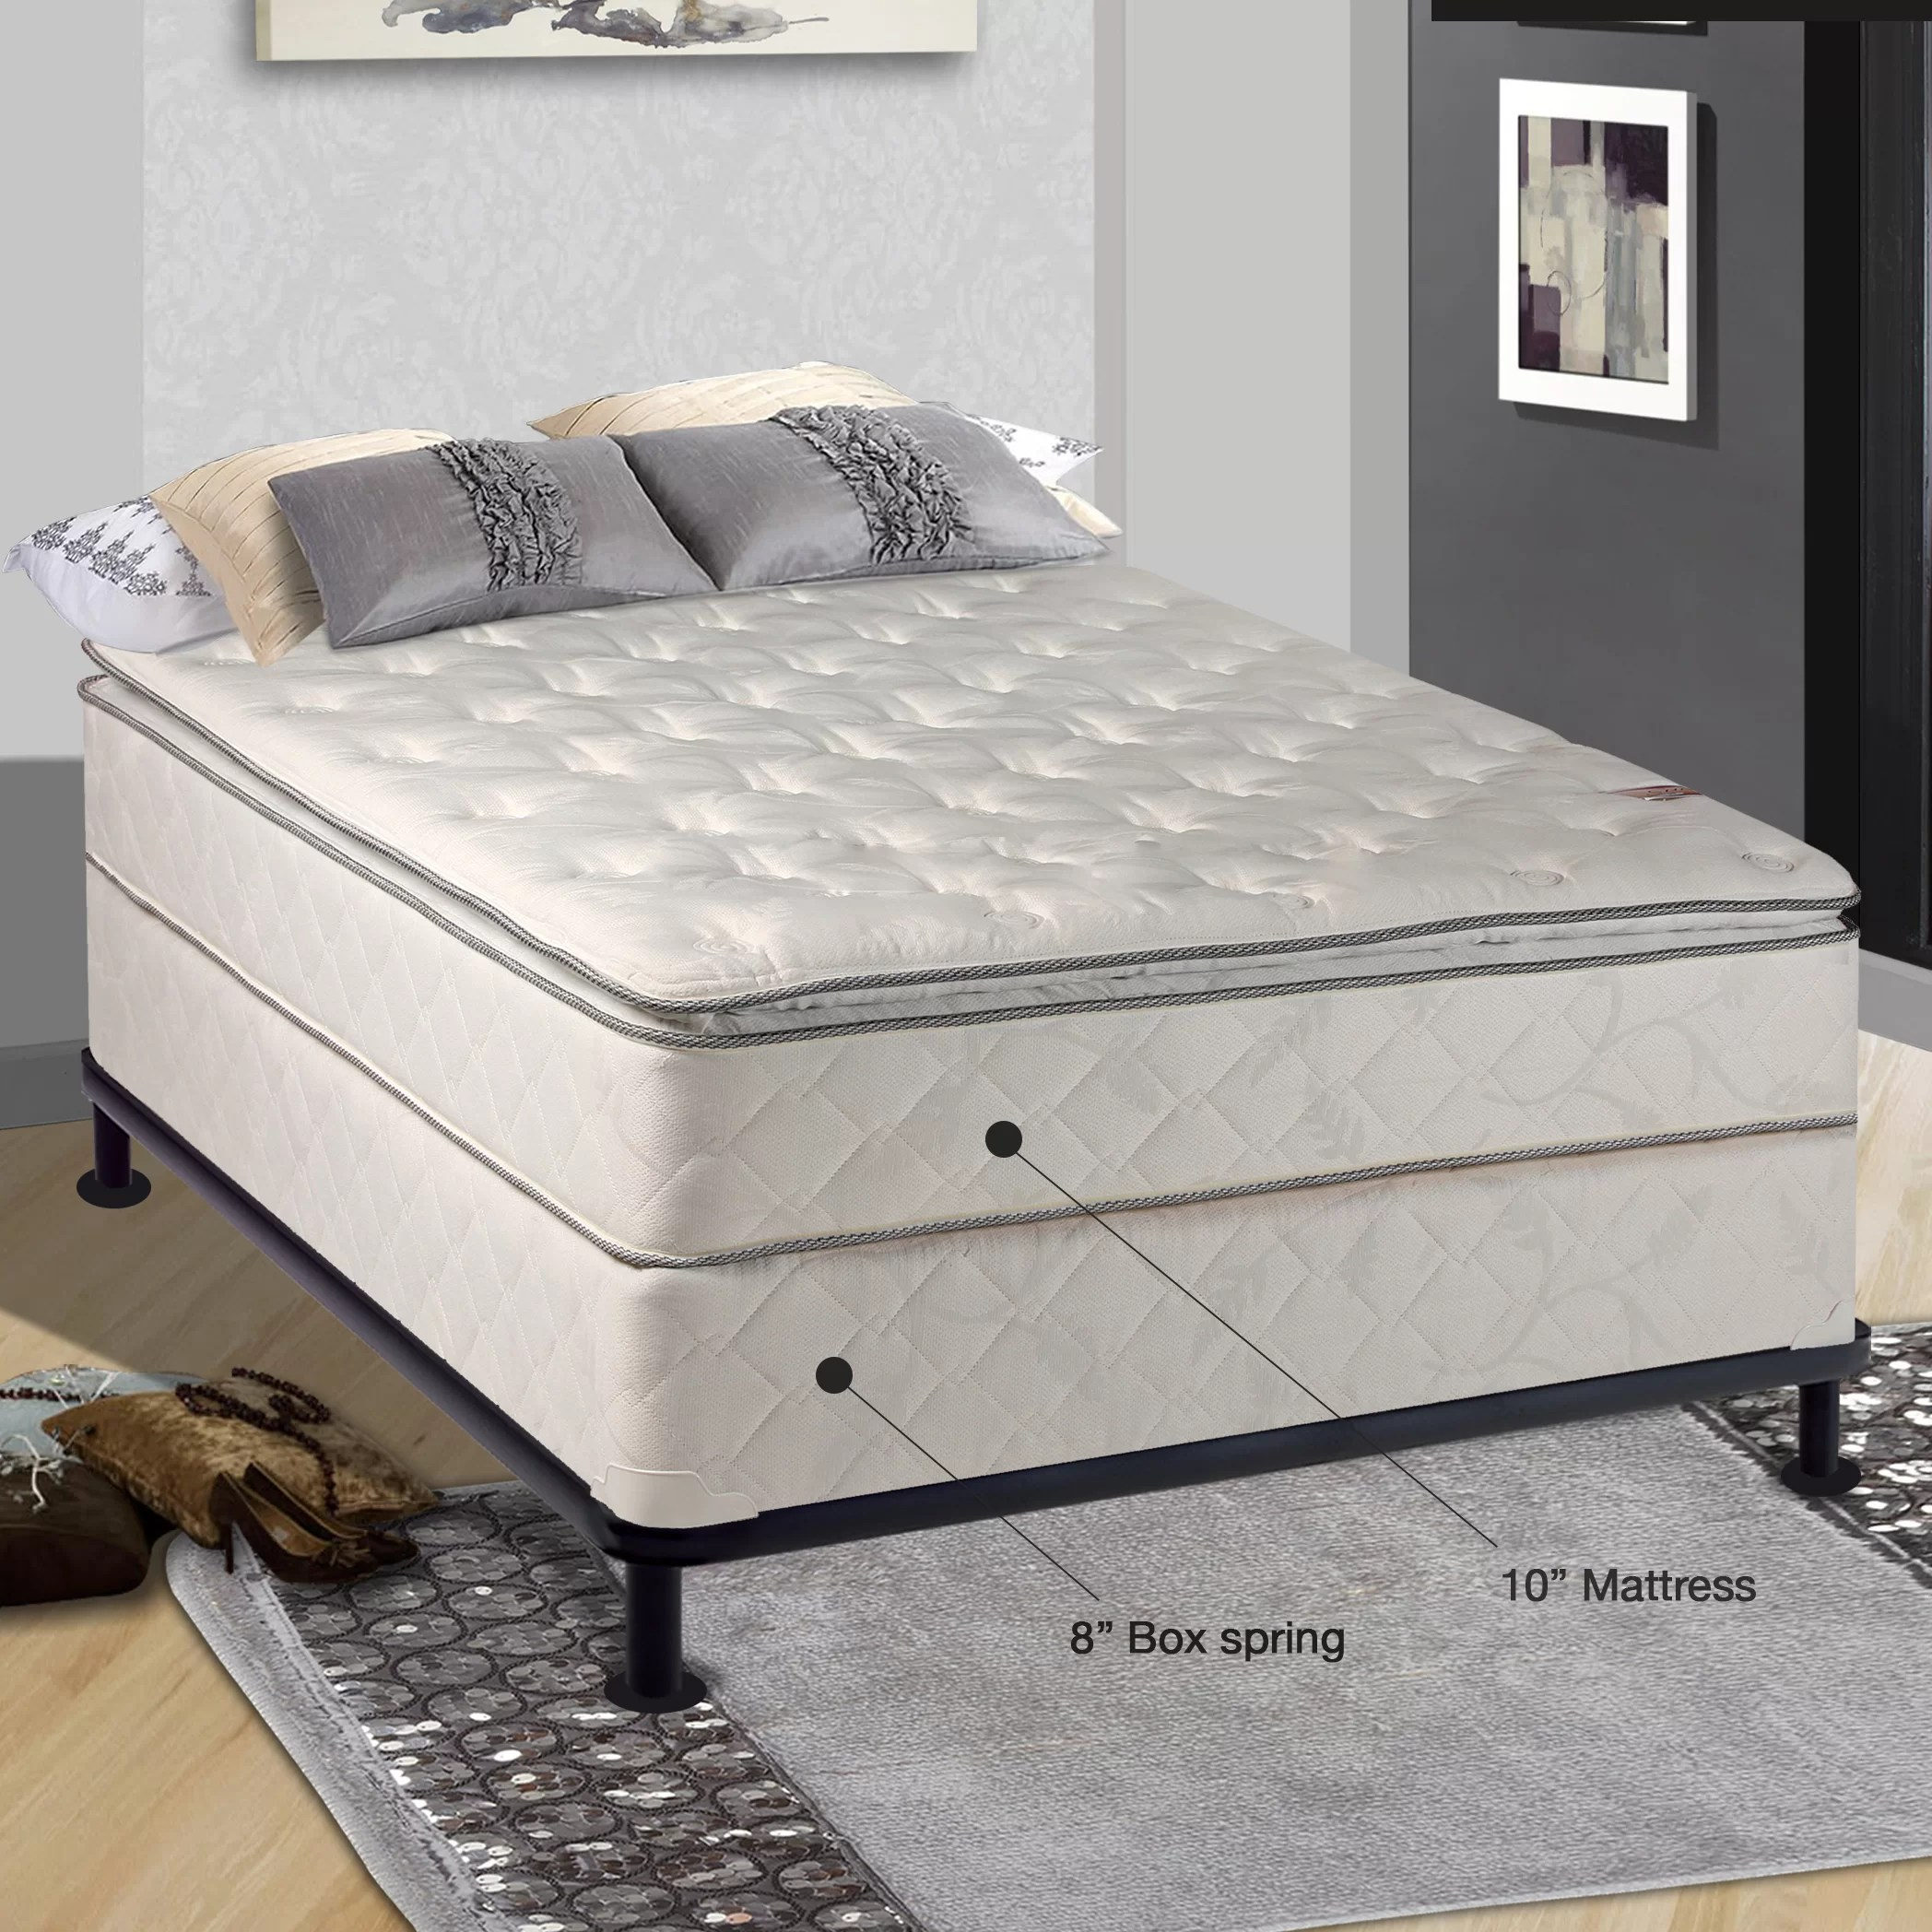 Spinal Solution Orthopedic 10quot Firm Mattress With Box